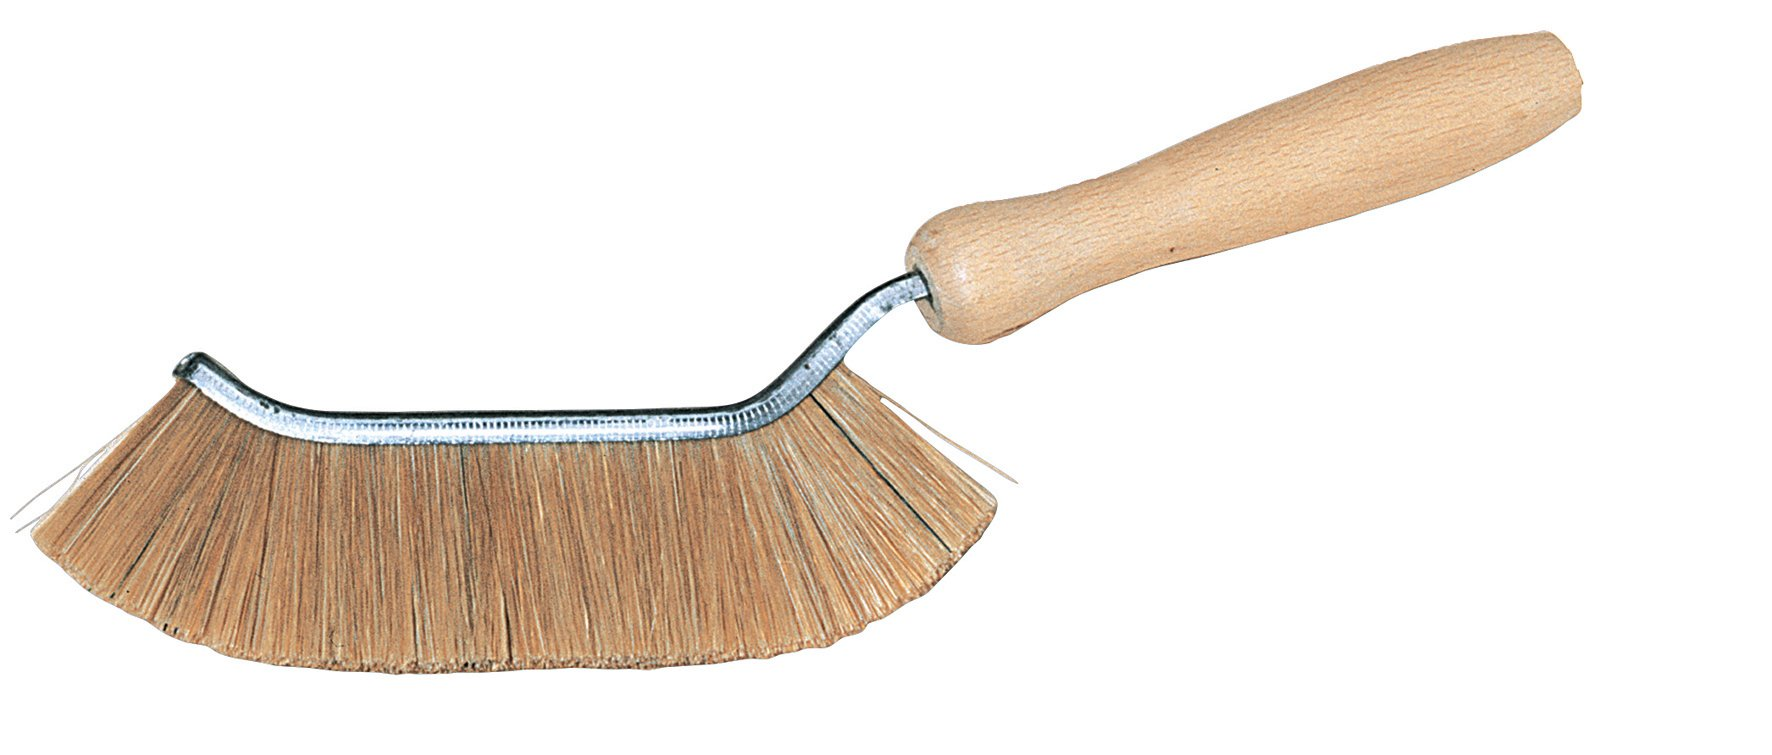 Redecker Natural Pig Bristle Edge Brush with Untreated Beechwood Handle, 5-1/8-Inches